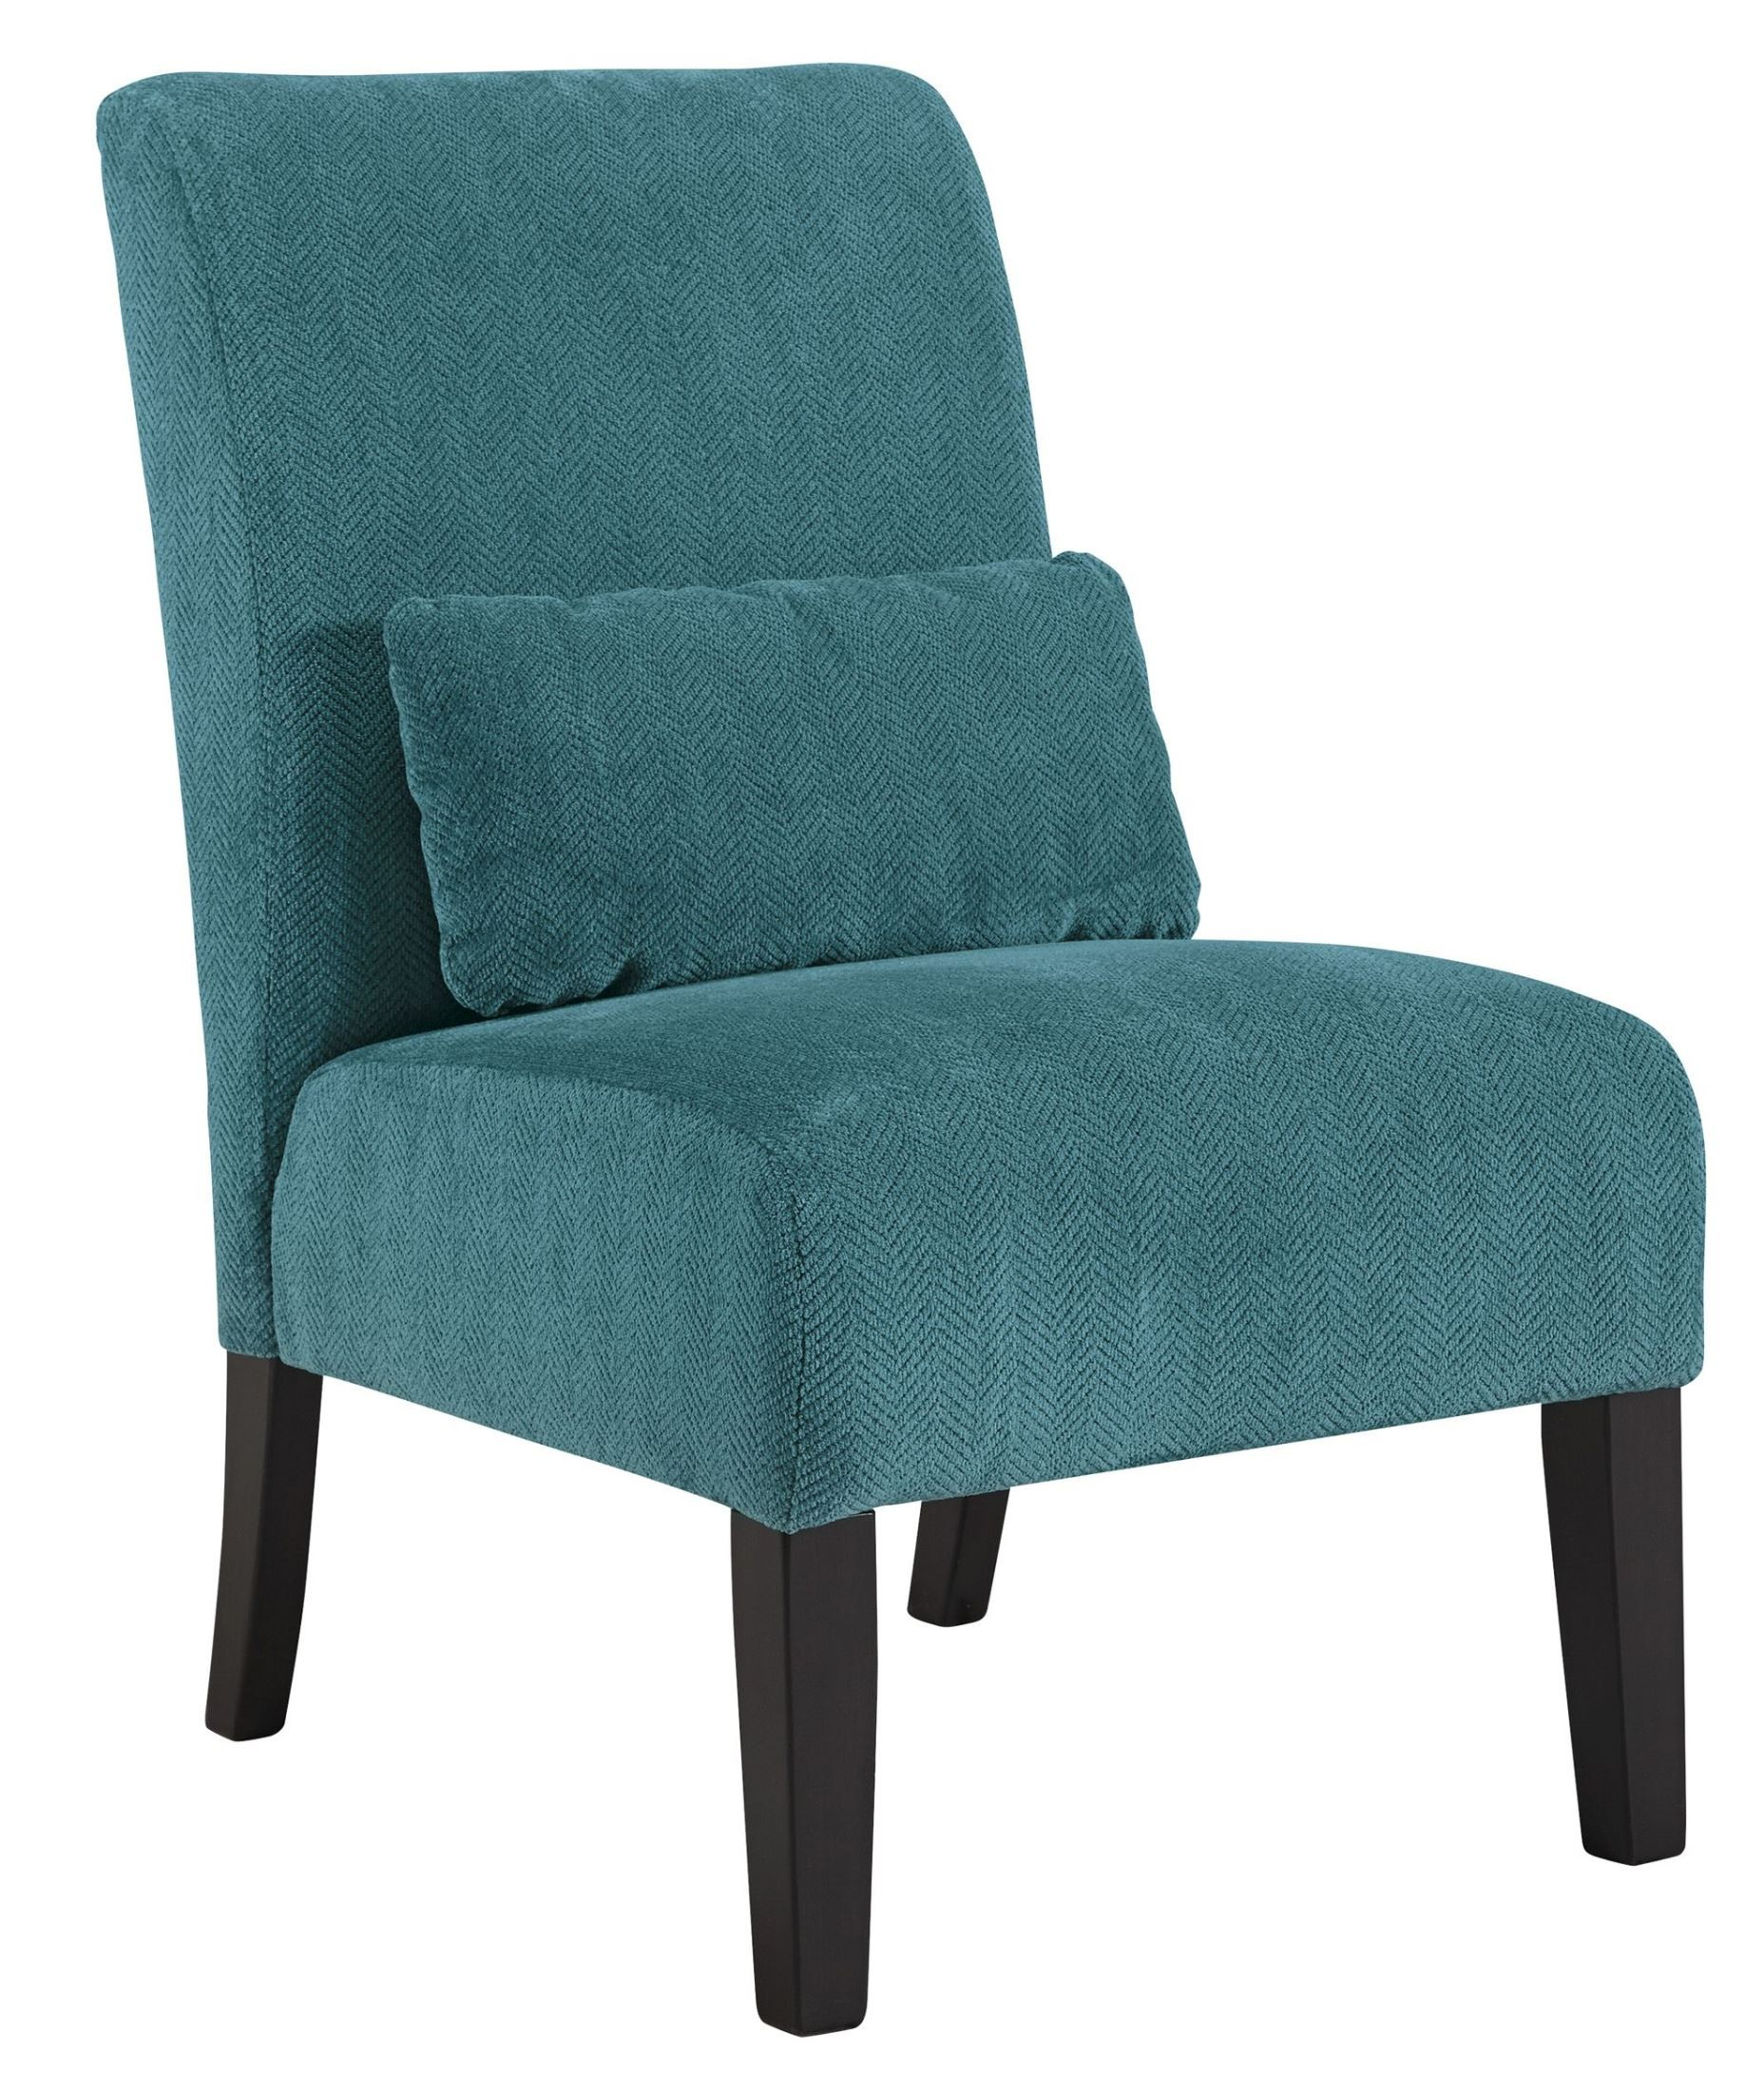 Annora Teal Accent Chair From Ashley 6160460 Coleman